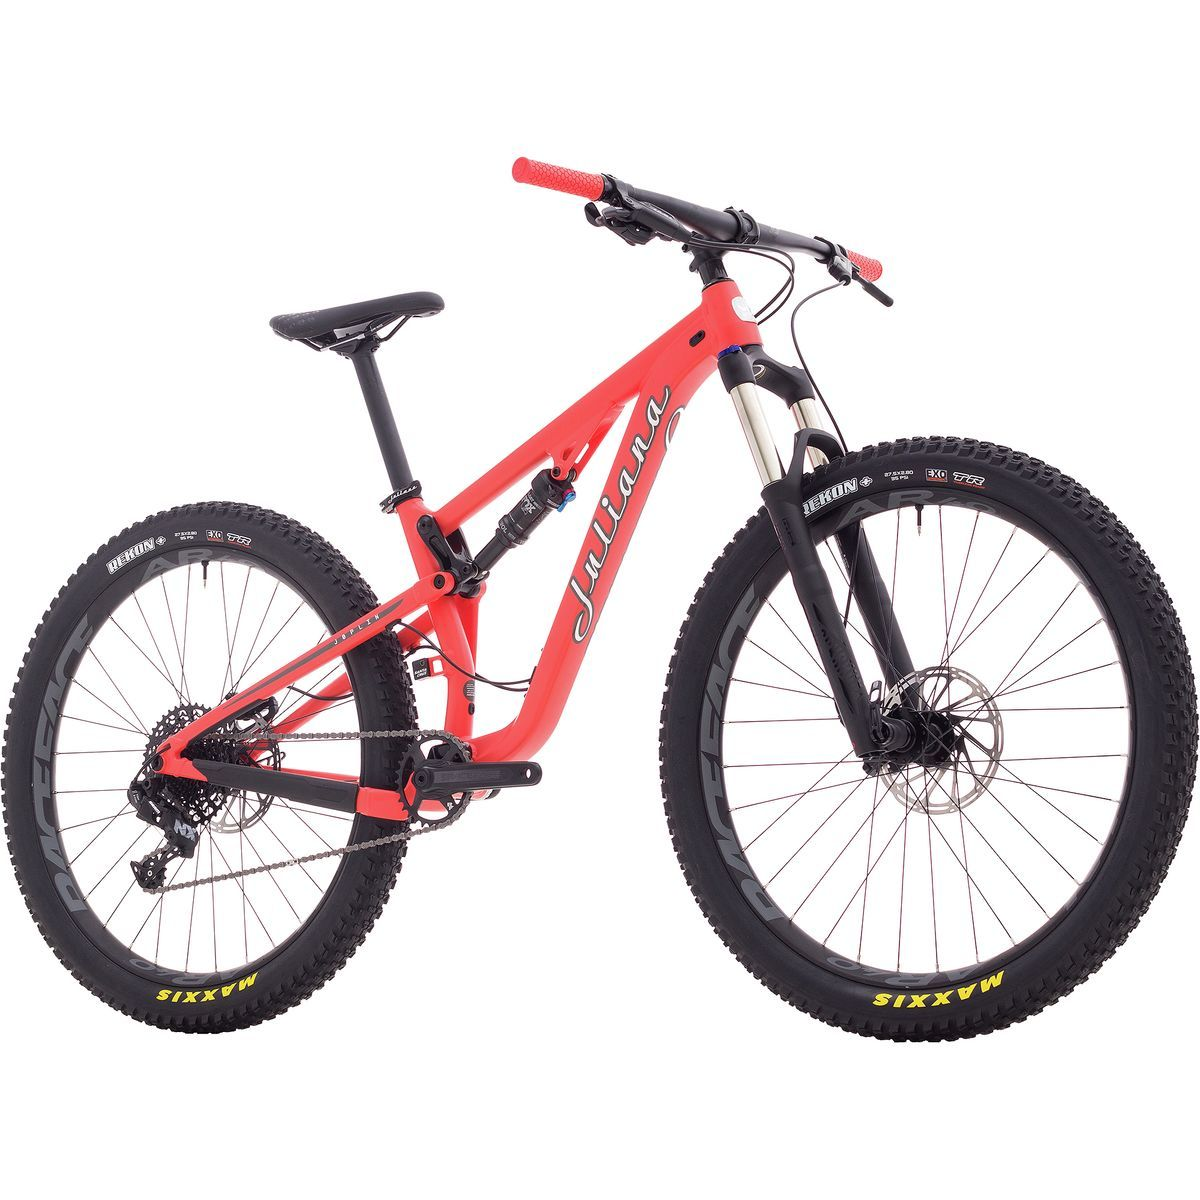 Buy Bicycle Online >> Mountain Bikes Buy Mountain Bikes Online Mountain Bikes Walmart